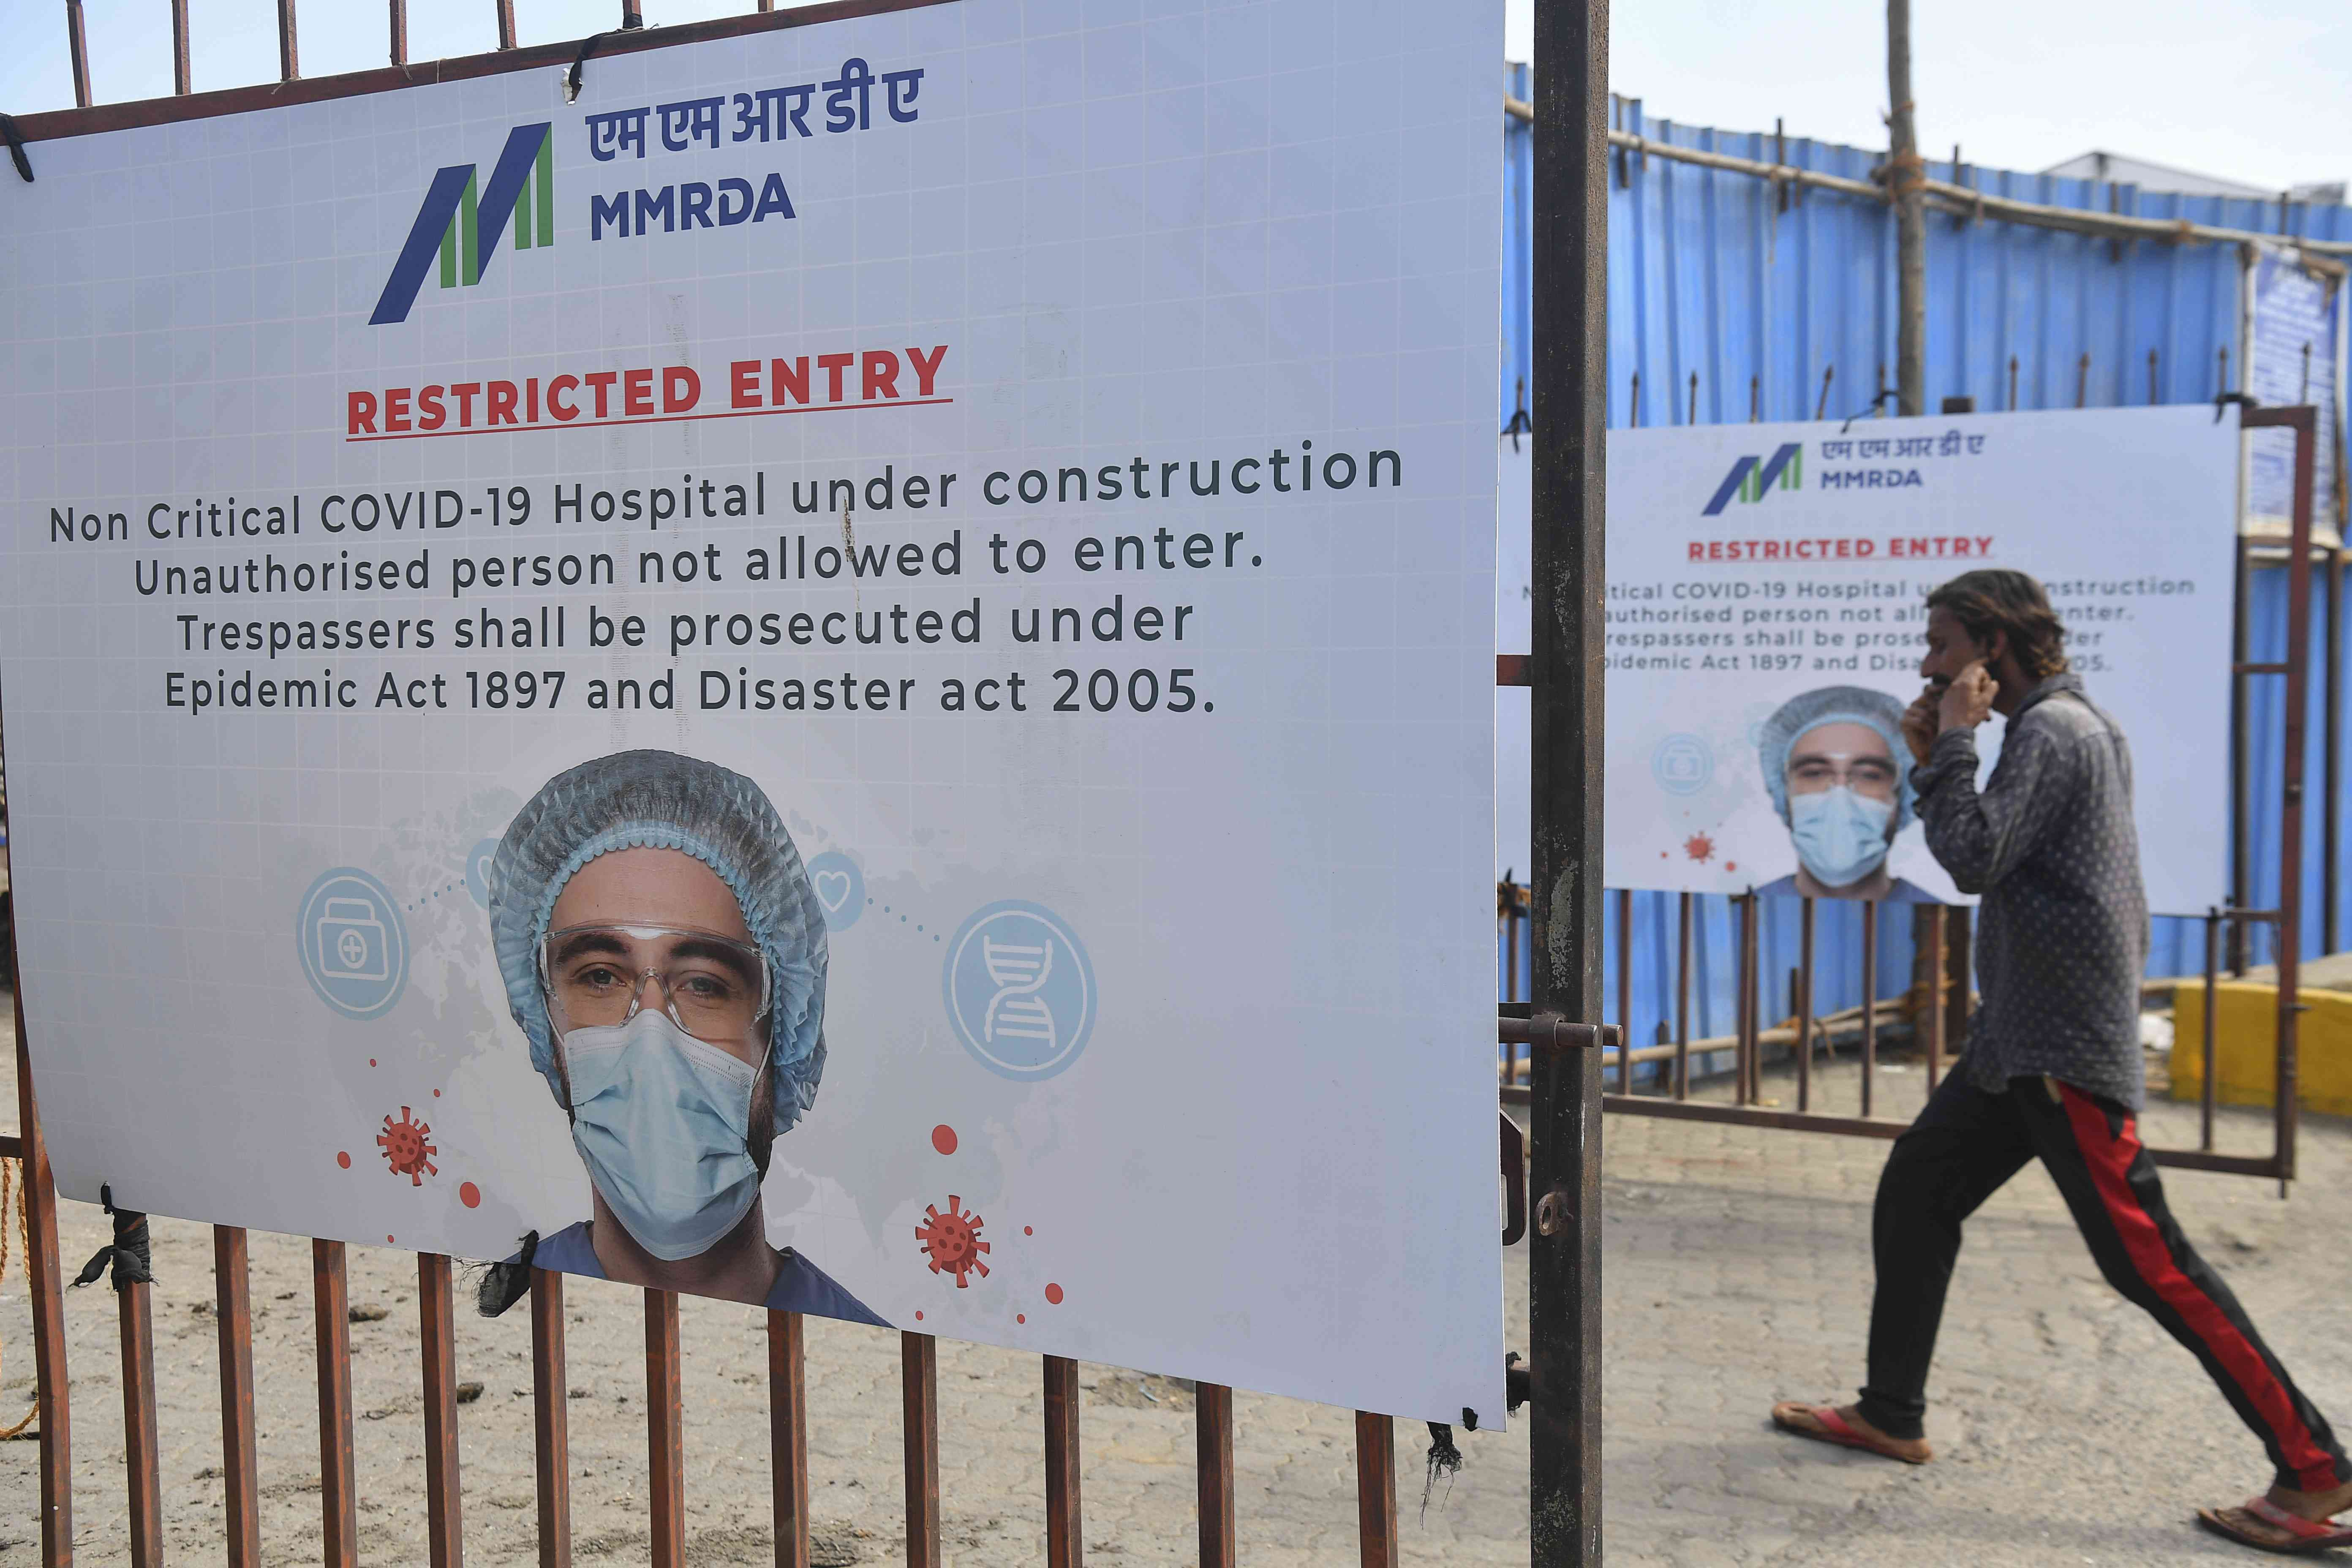 A temporary hospital for non-critical Covid-19 patients under construction. — AFP